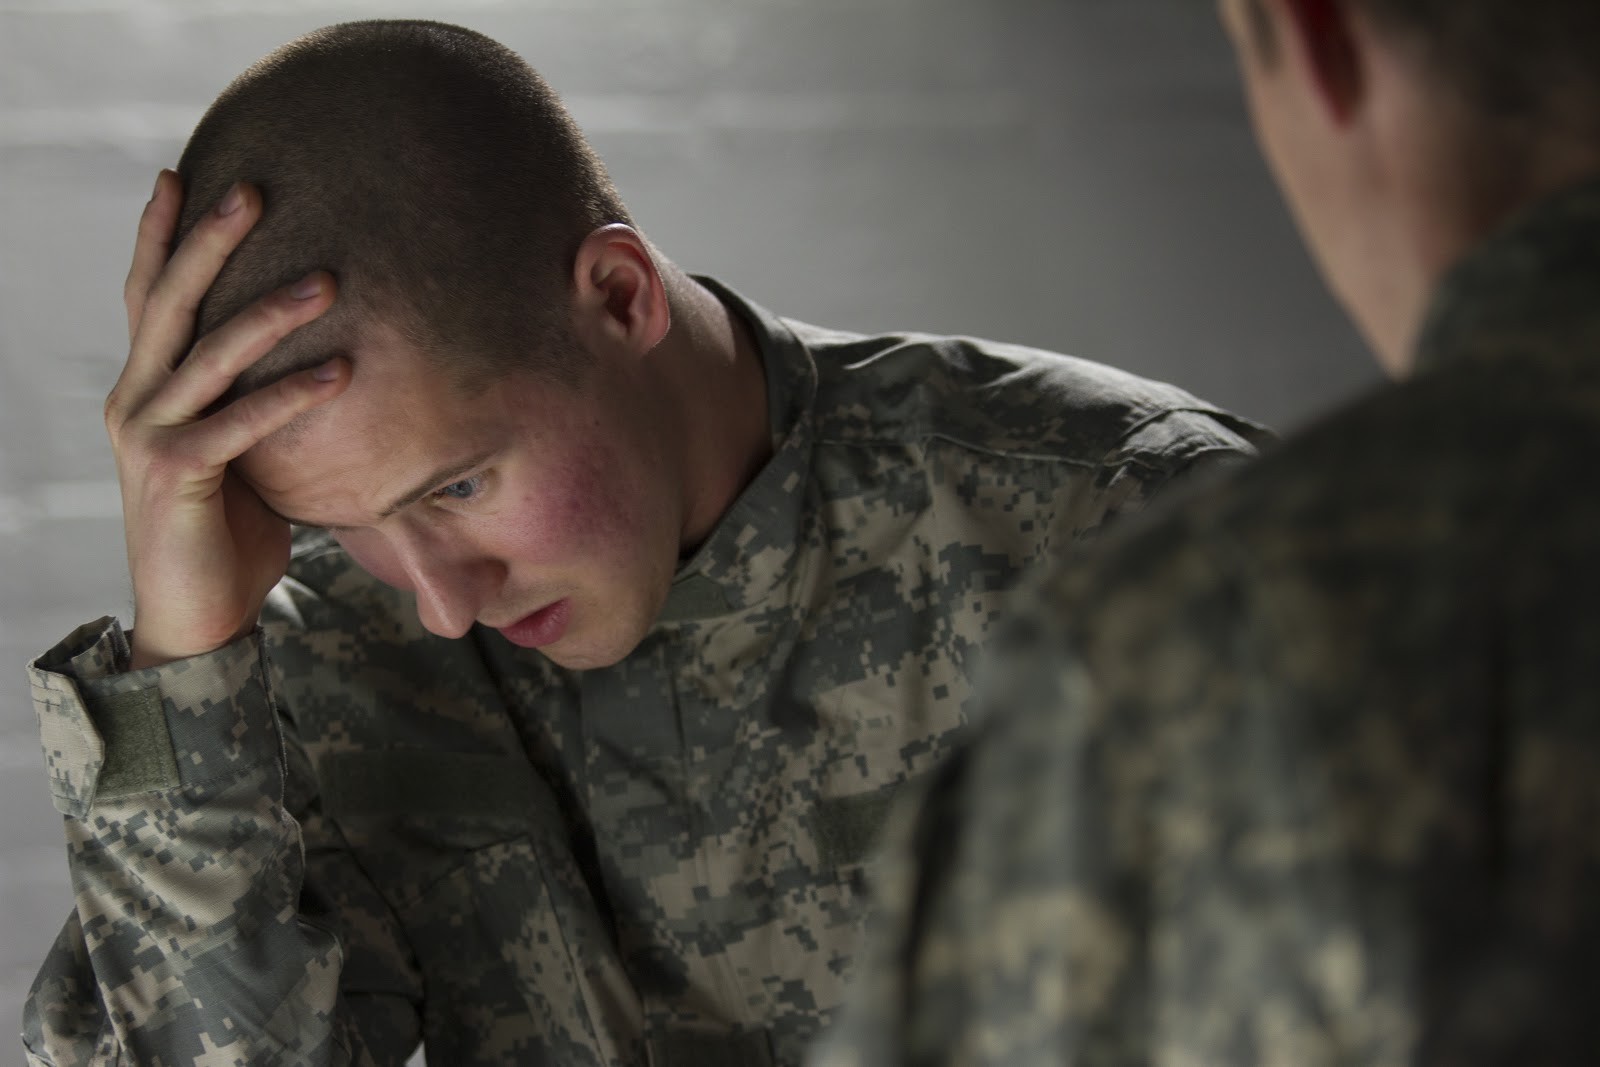 A soldier with his head in his hands, speaking to another about PTSD